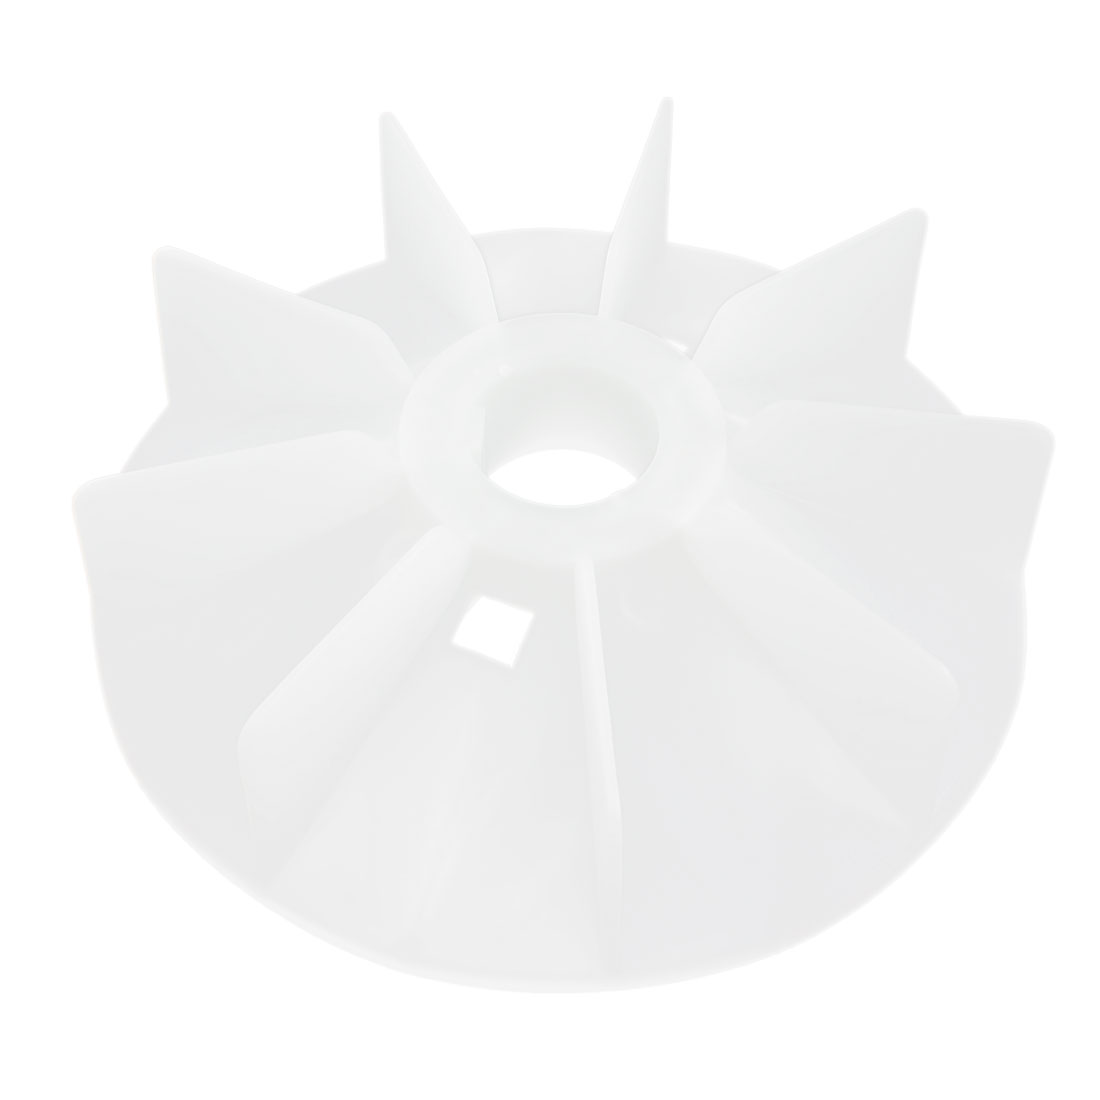 8-Vane 58mm Shaft Hole Dia Plastic Impeller Motor Cooling Fan Vane